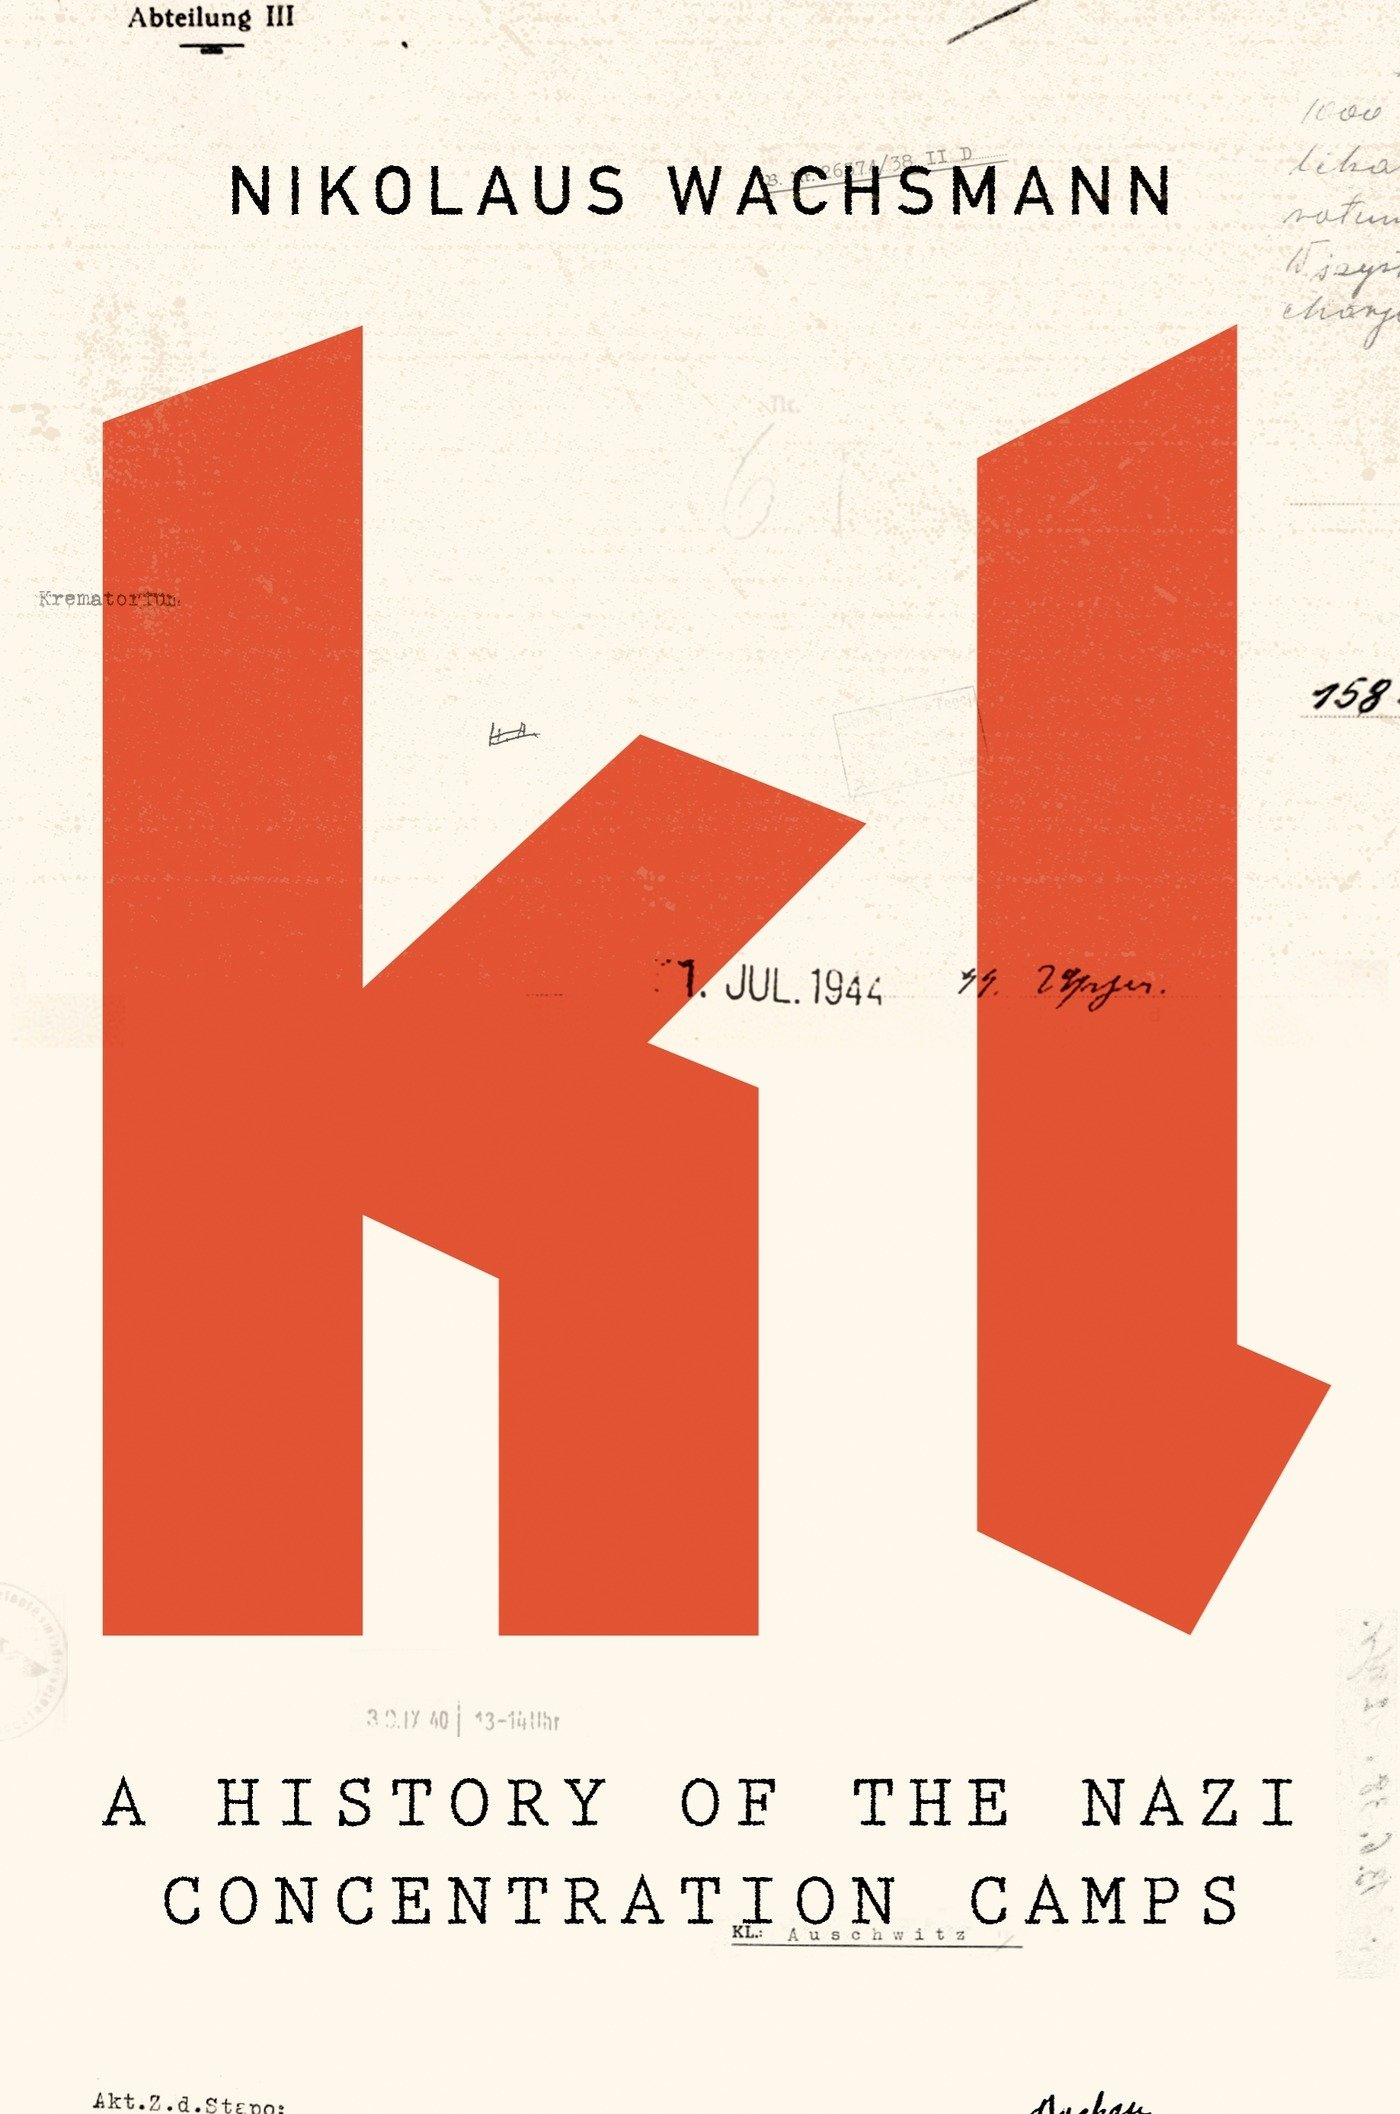 Cover of KL : a history of the Nazi concentration camps by Nikolaus Wachsmann